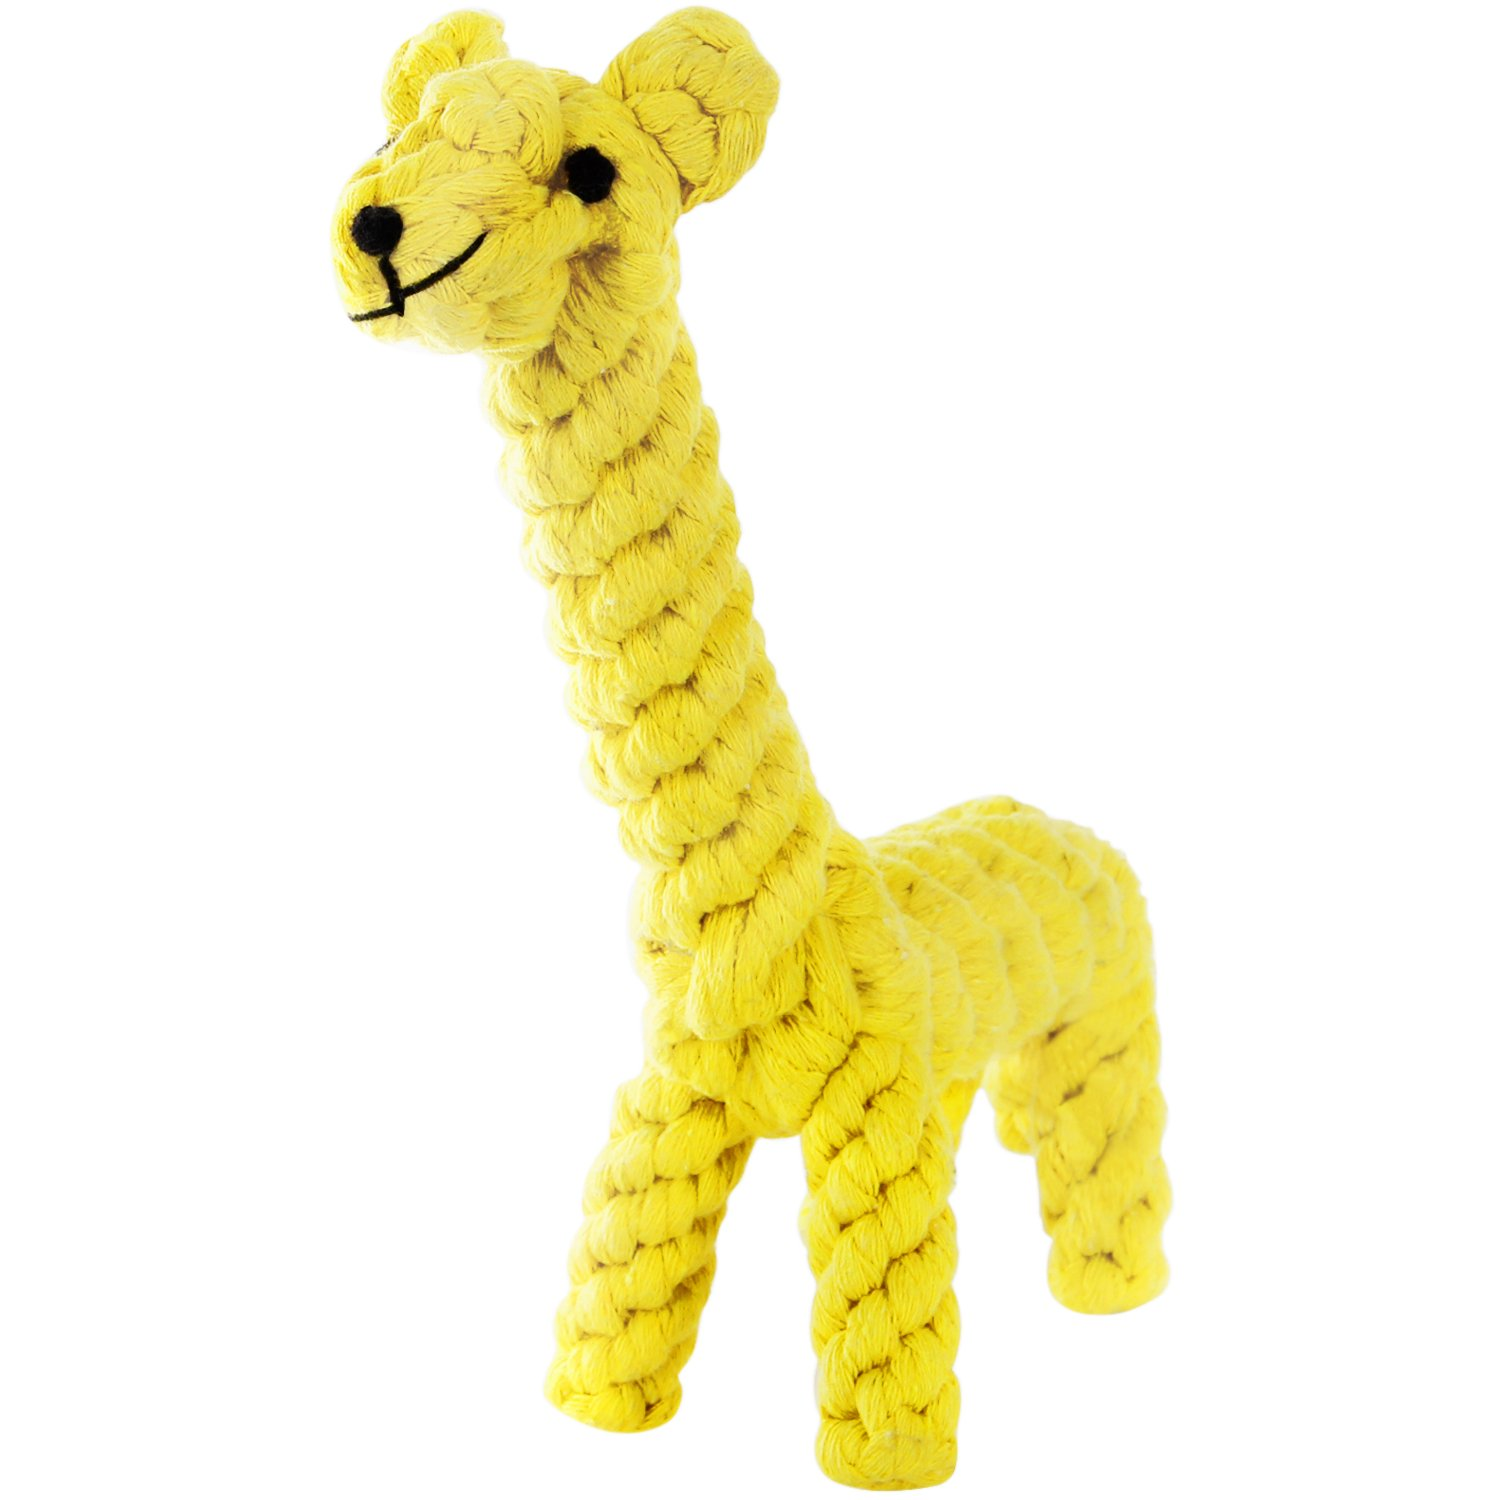 Lifewit Giraffe Puppy Chew Dog Toys Cotton Dental Teaser Rope Teeth Cleanning Toy